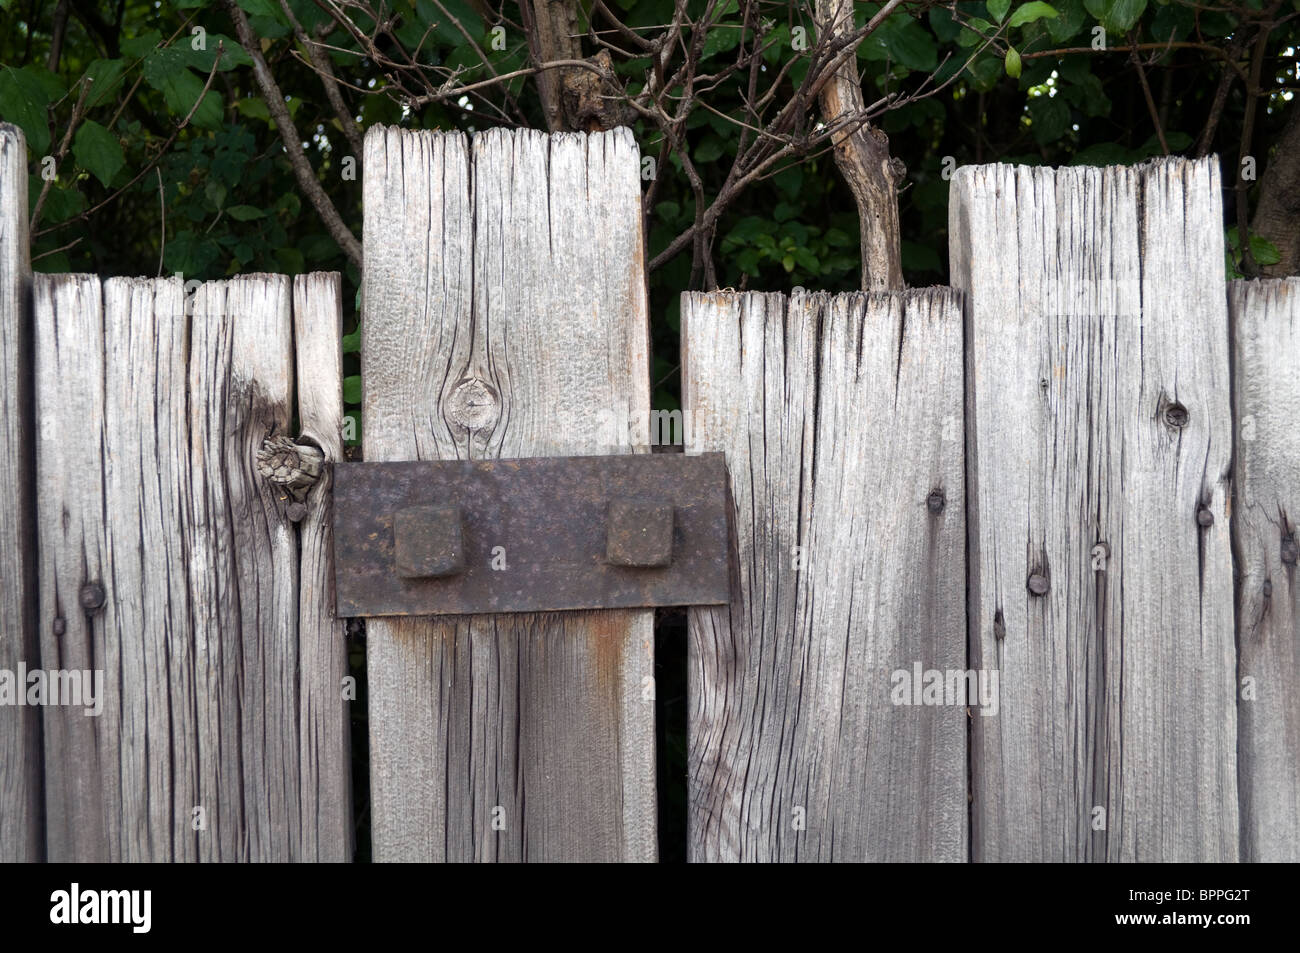 A Rickety Old Wooden Fence Reinforced And Repaired With A